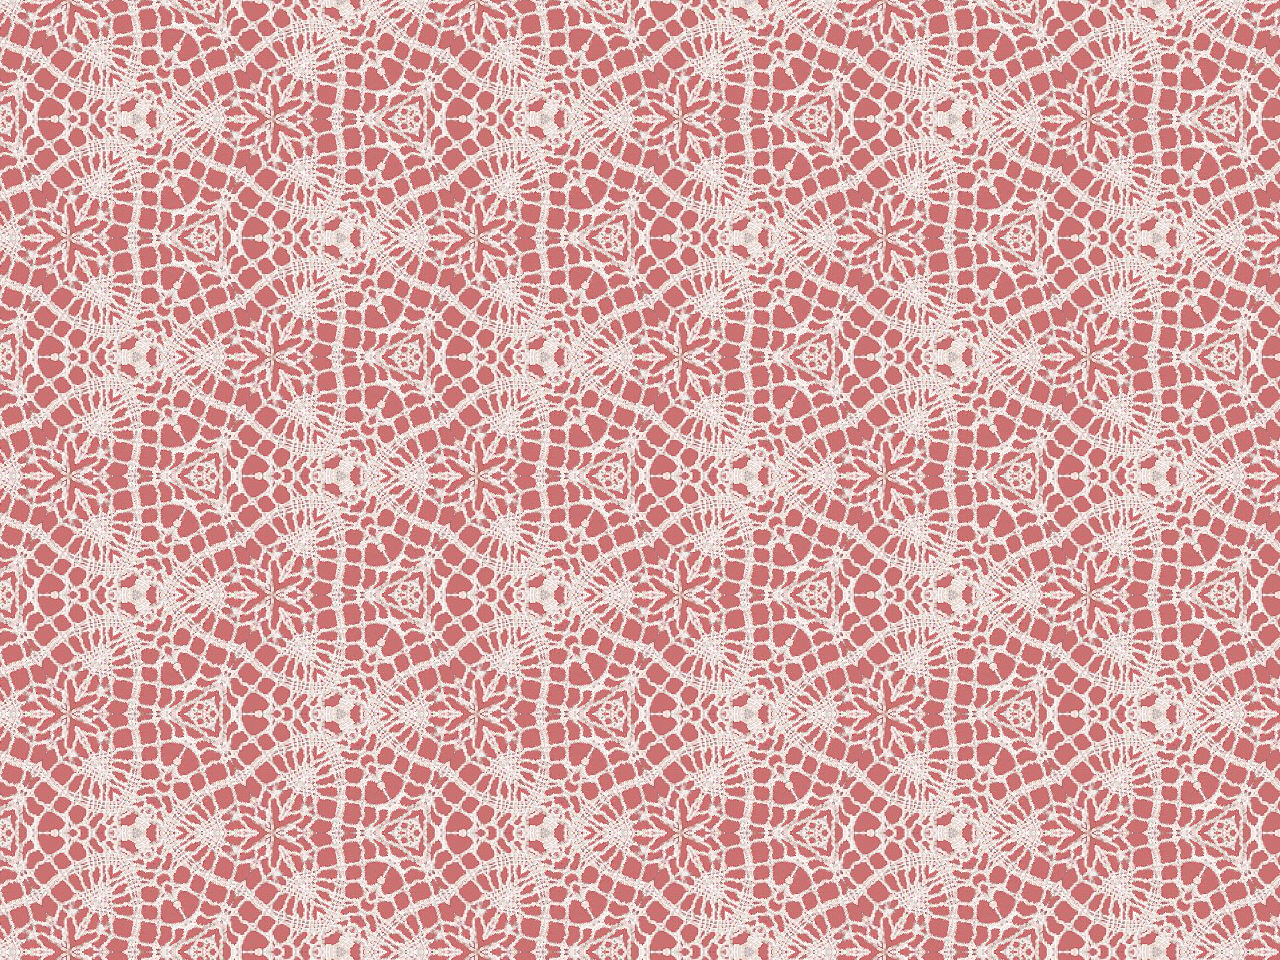 ArtbyJean - Images of Lace: OFF WHITE LACE OVER OLD ROSE ...